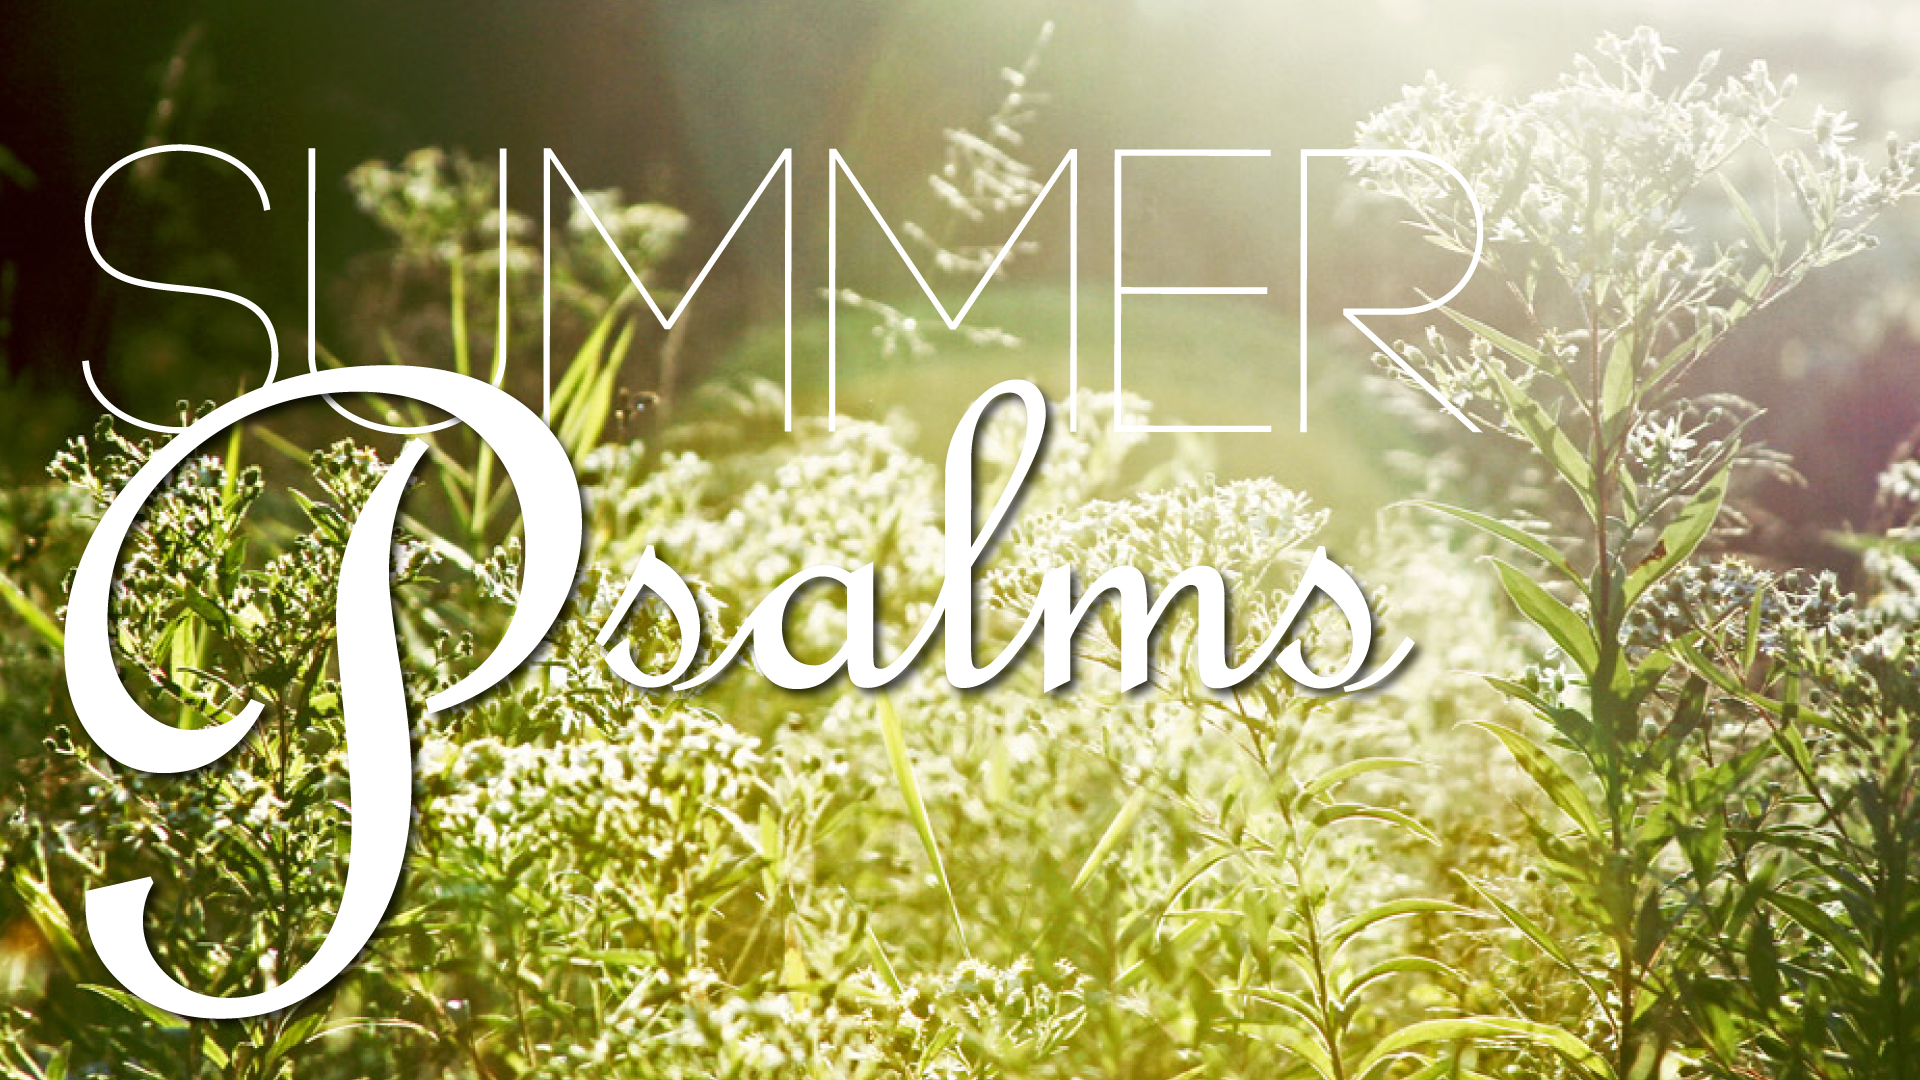 Summer-Psalms.jpg